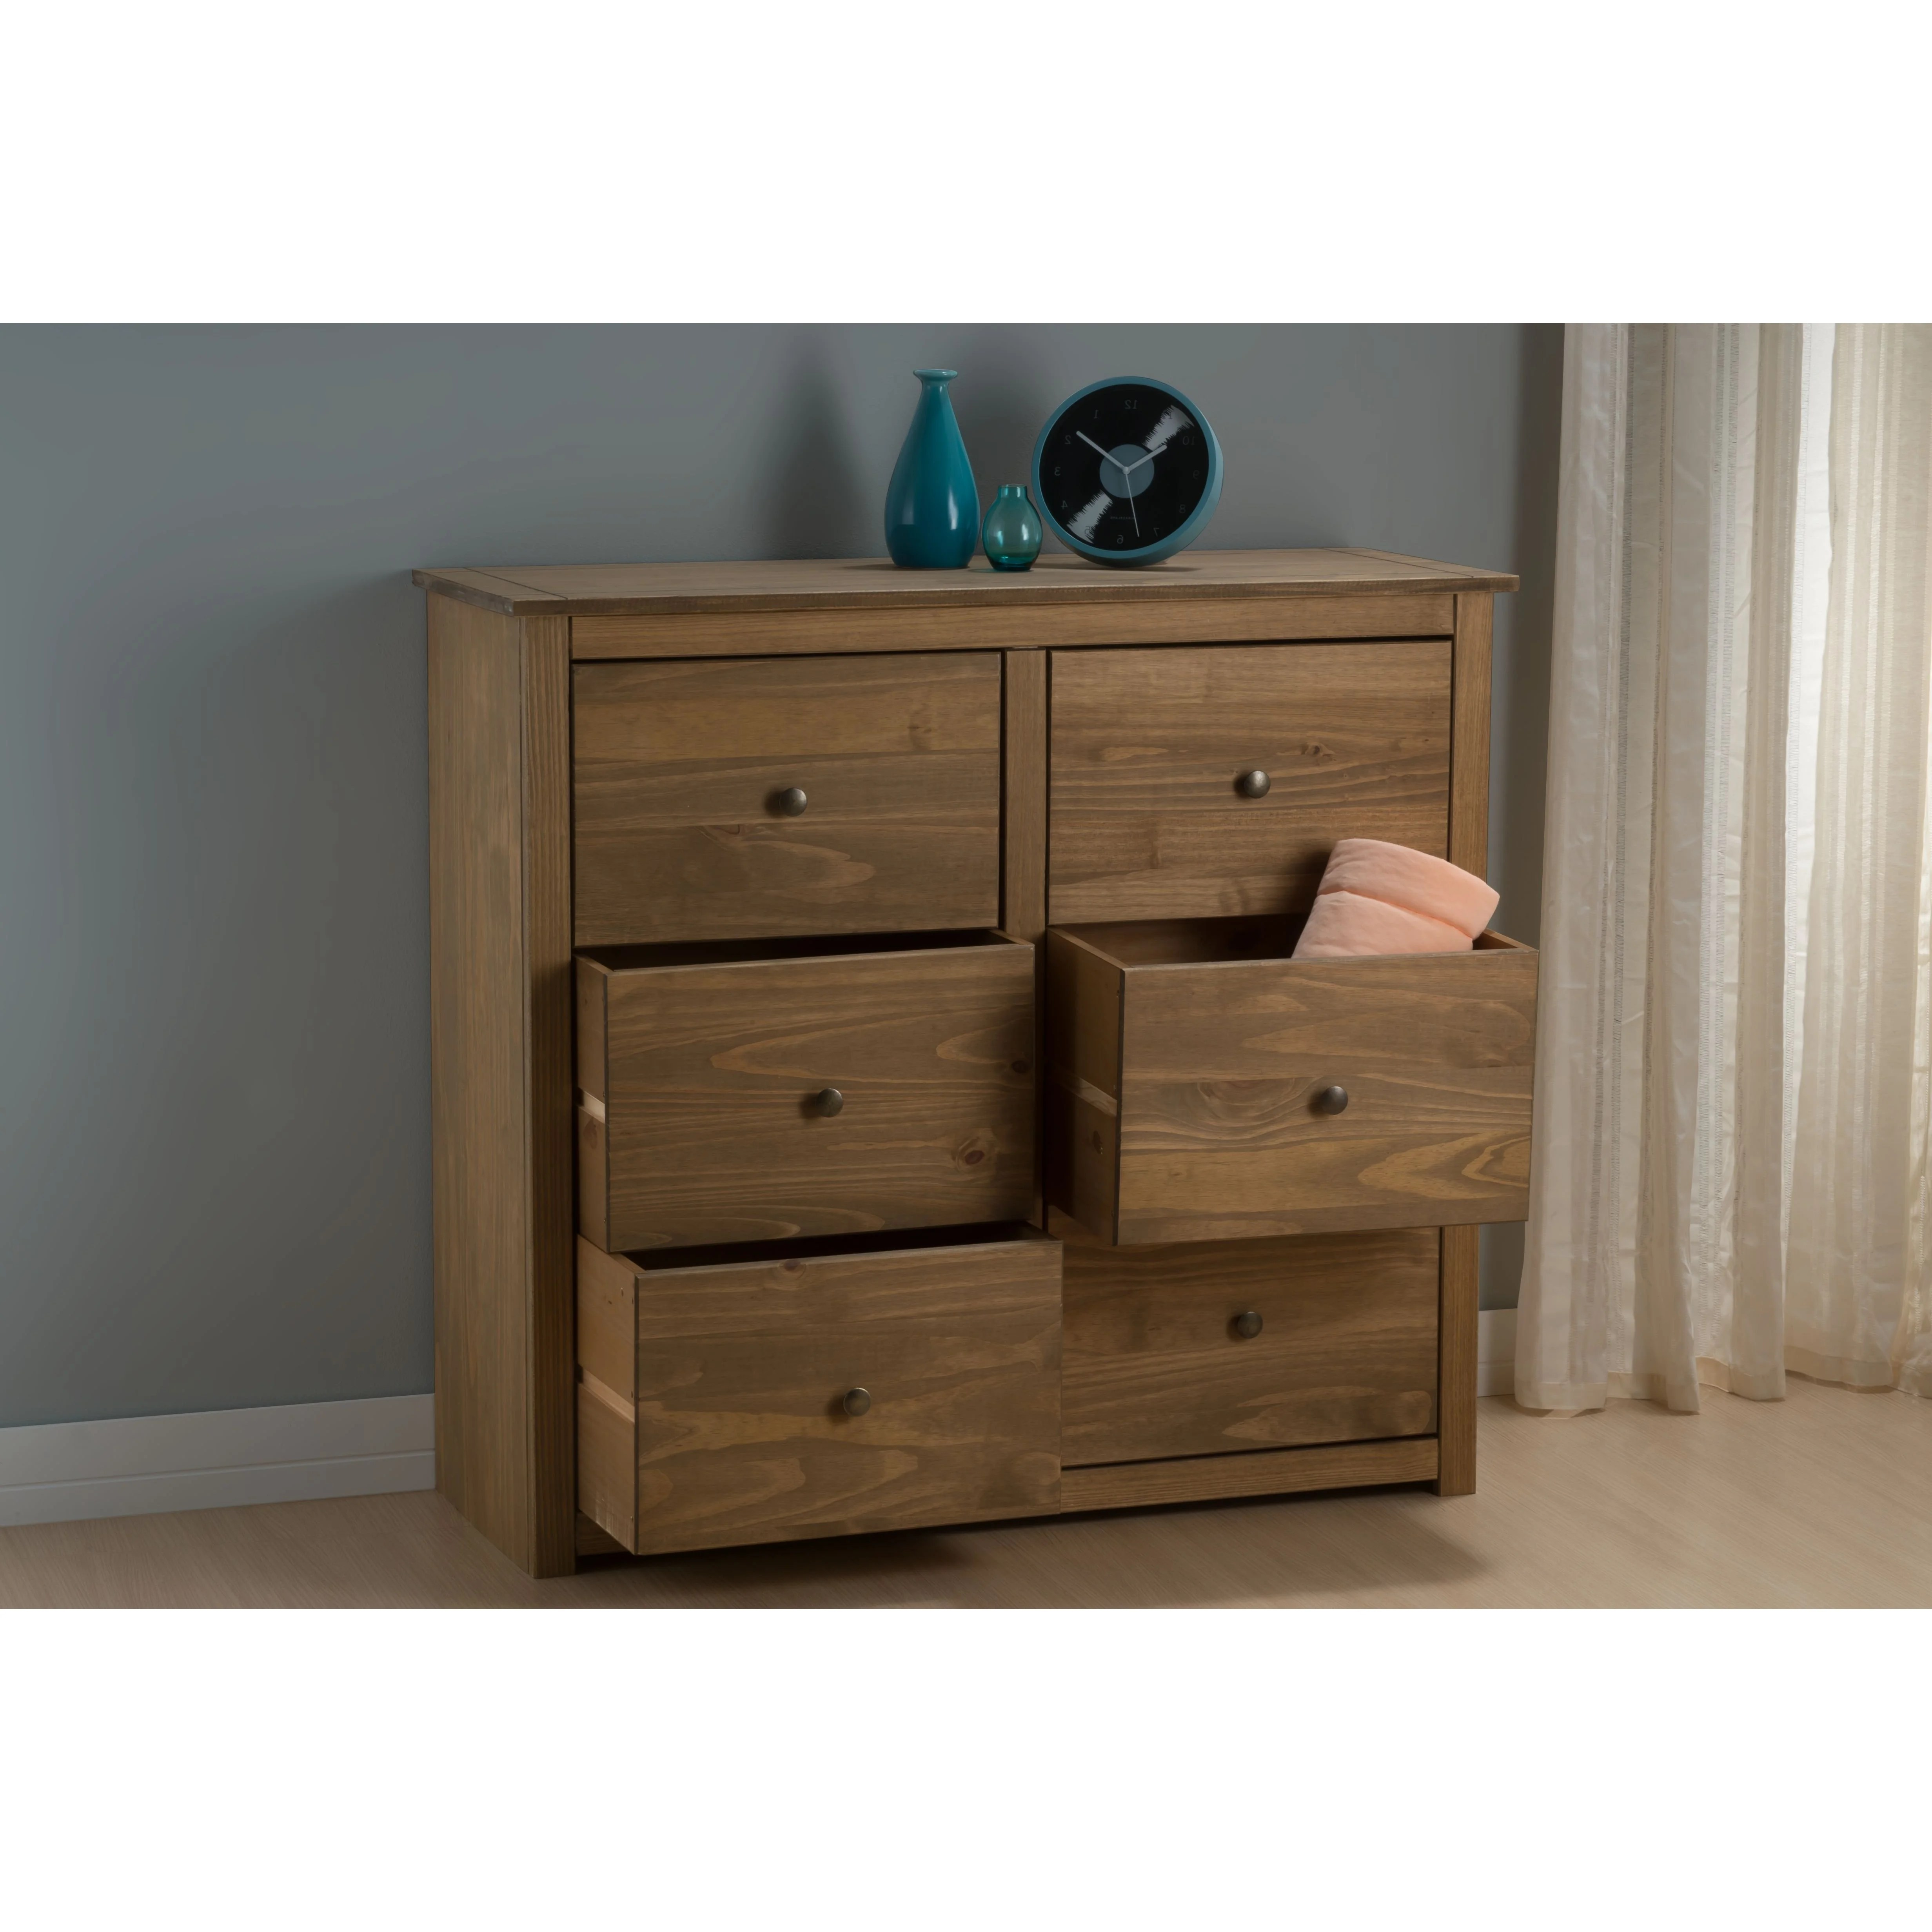 Home Loft Concept Home Loft Concept Sascha 6 Drawers Chest Of Drawers